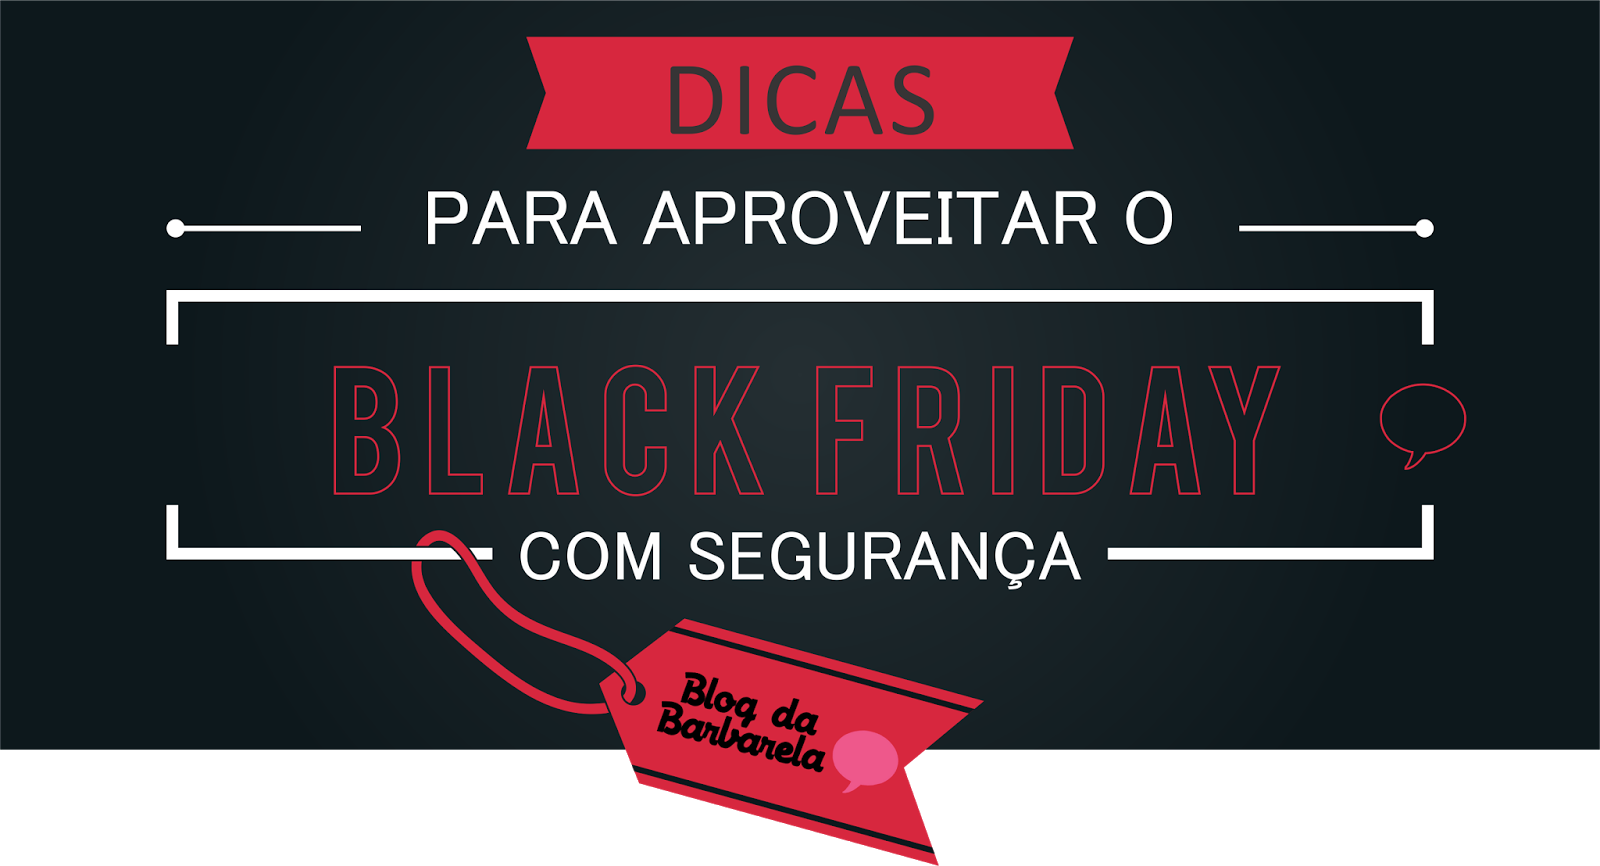 Cuidados ao comprar no Black Friday